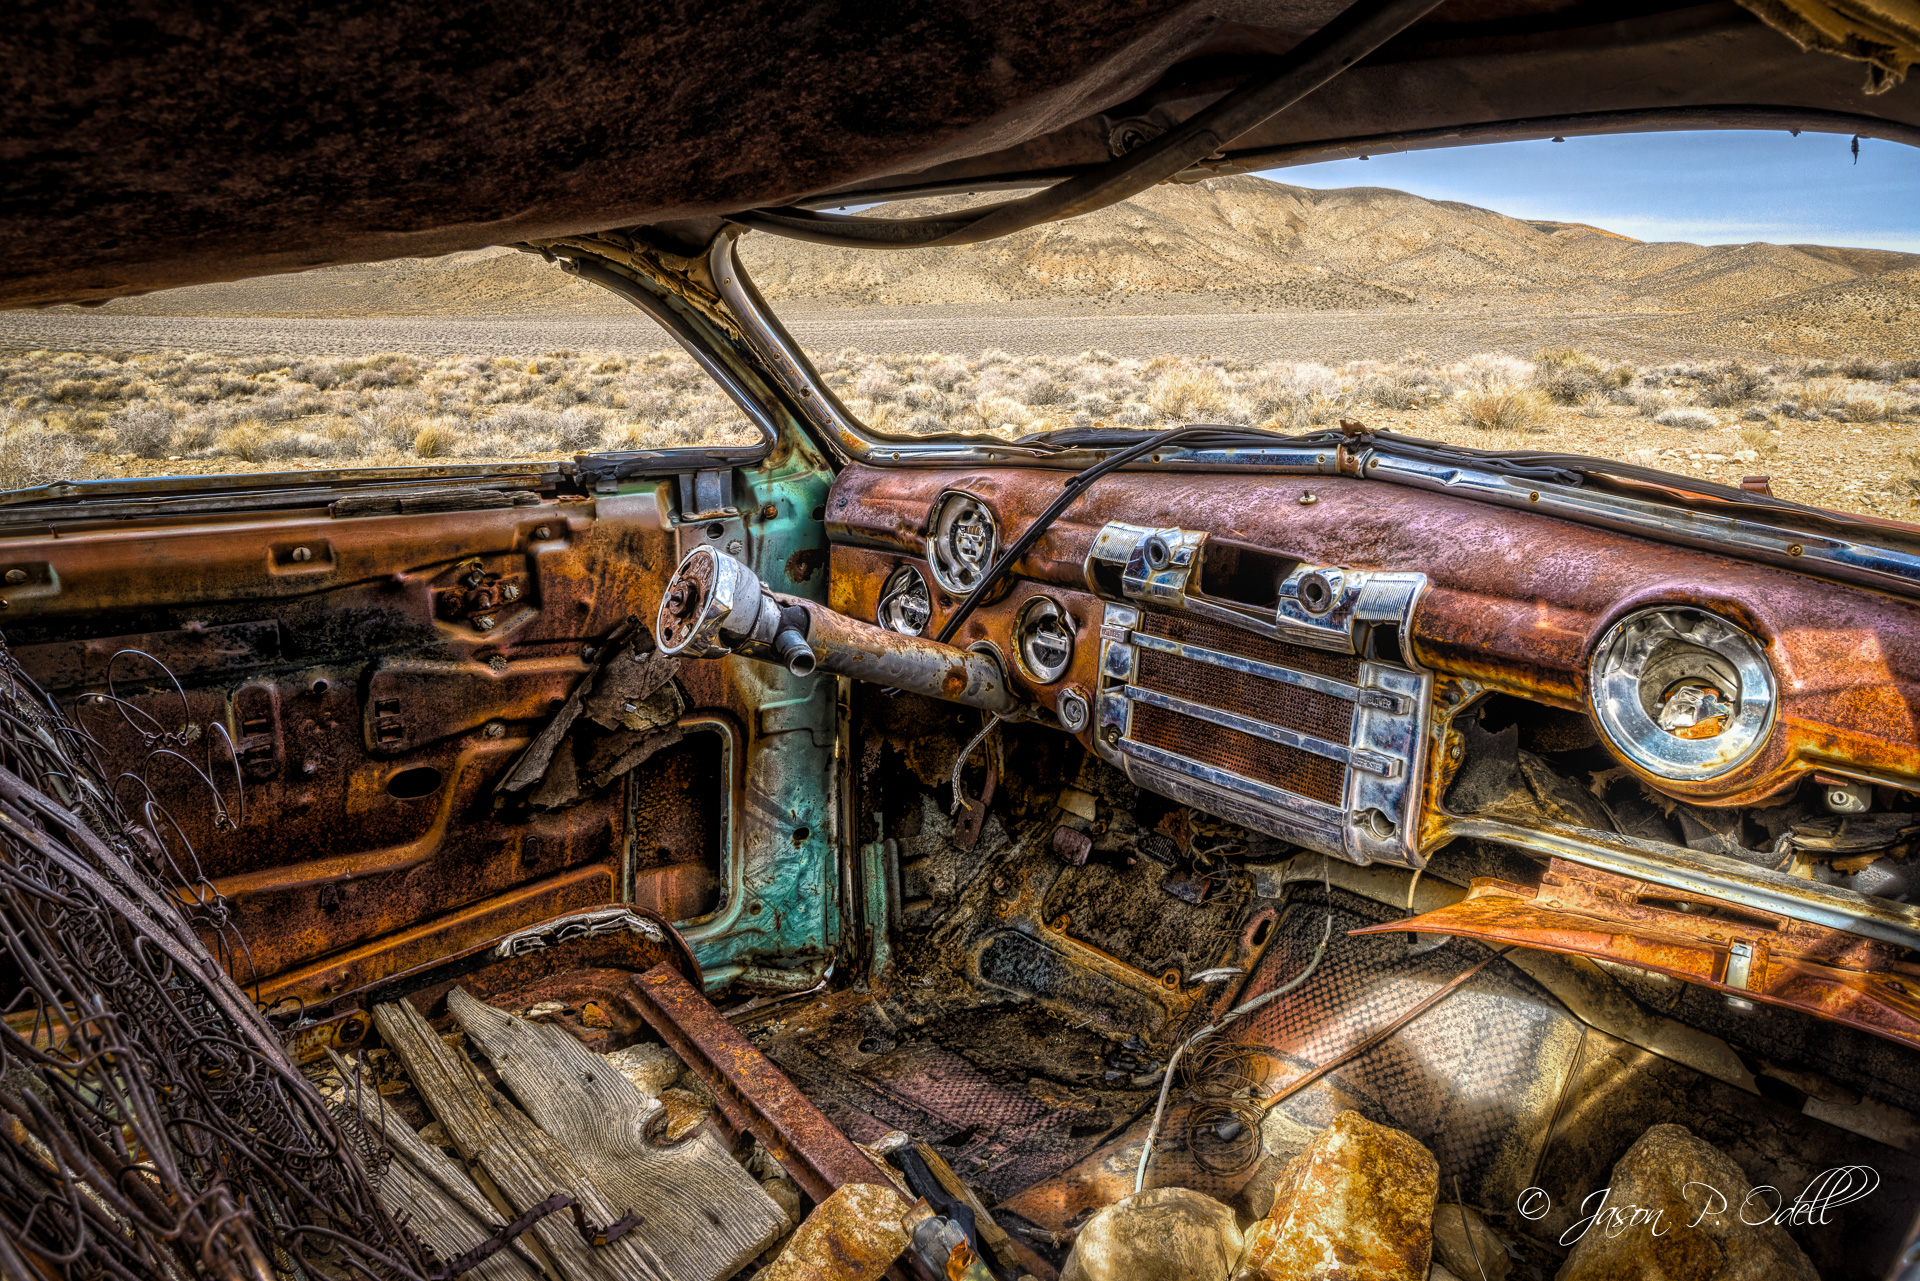 Join me online Saturday, December 5th, 2015 to learn the keys to successful HDR photography